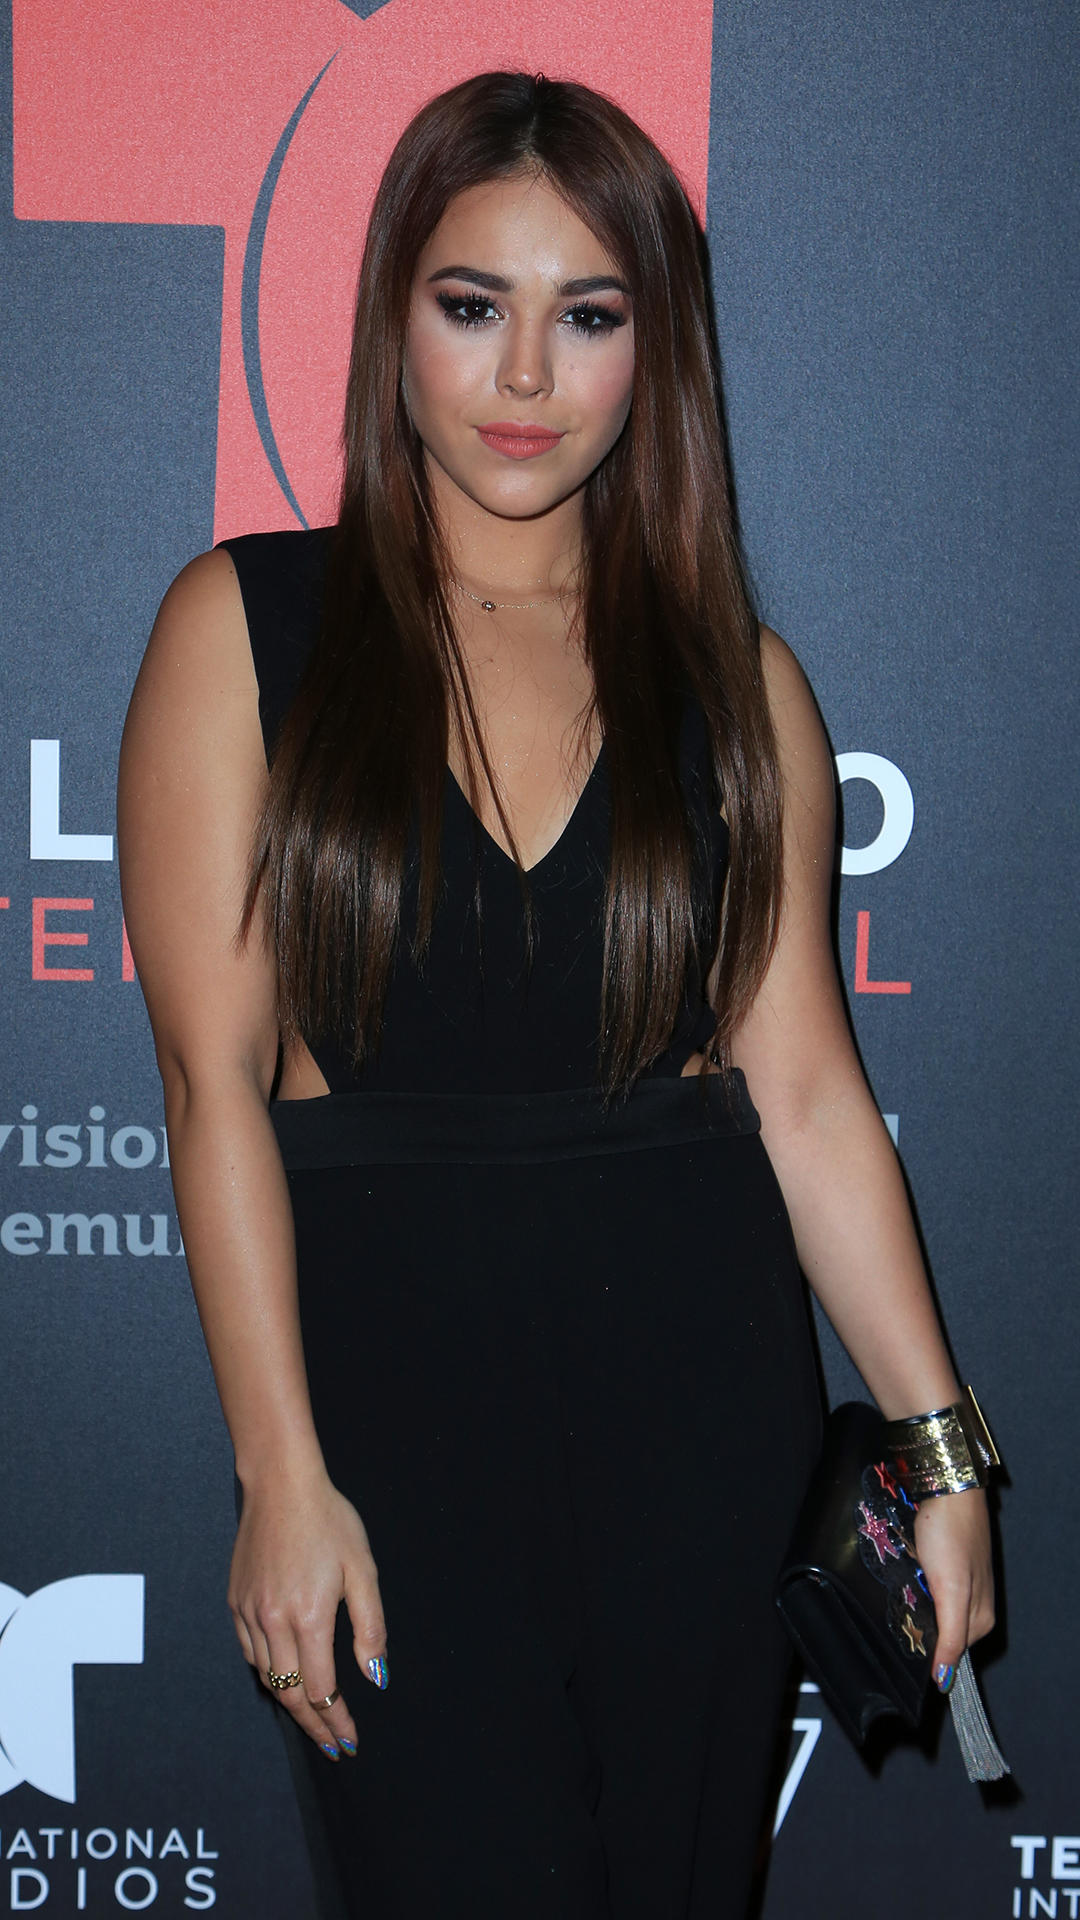 http://www.telemundo.com/sites/nbcutelemundo/files/styles/gallery_slide_full/public/images/gallery/2017/01/18/natpe2-dannapaola-7u8a4294.jpg?itok=_RoVT2KC